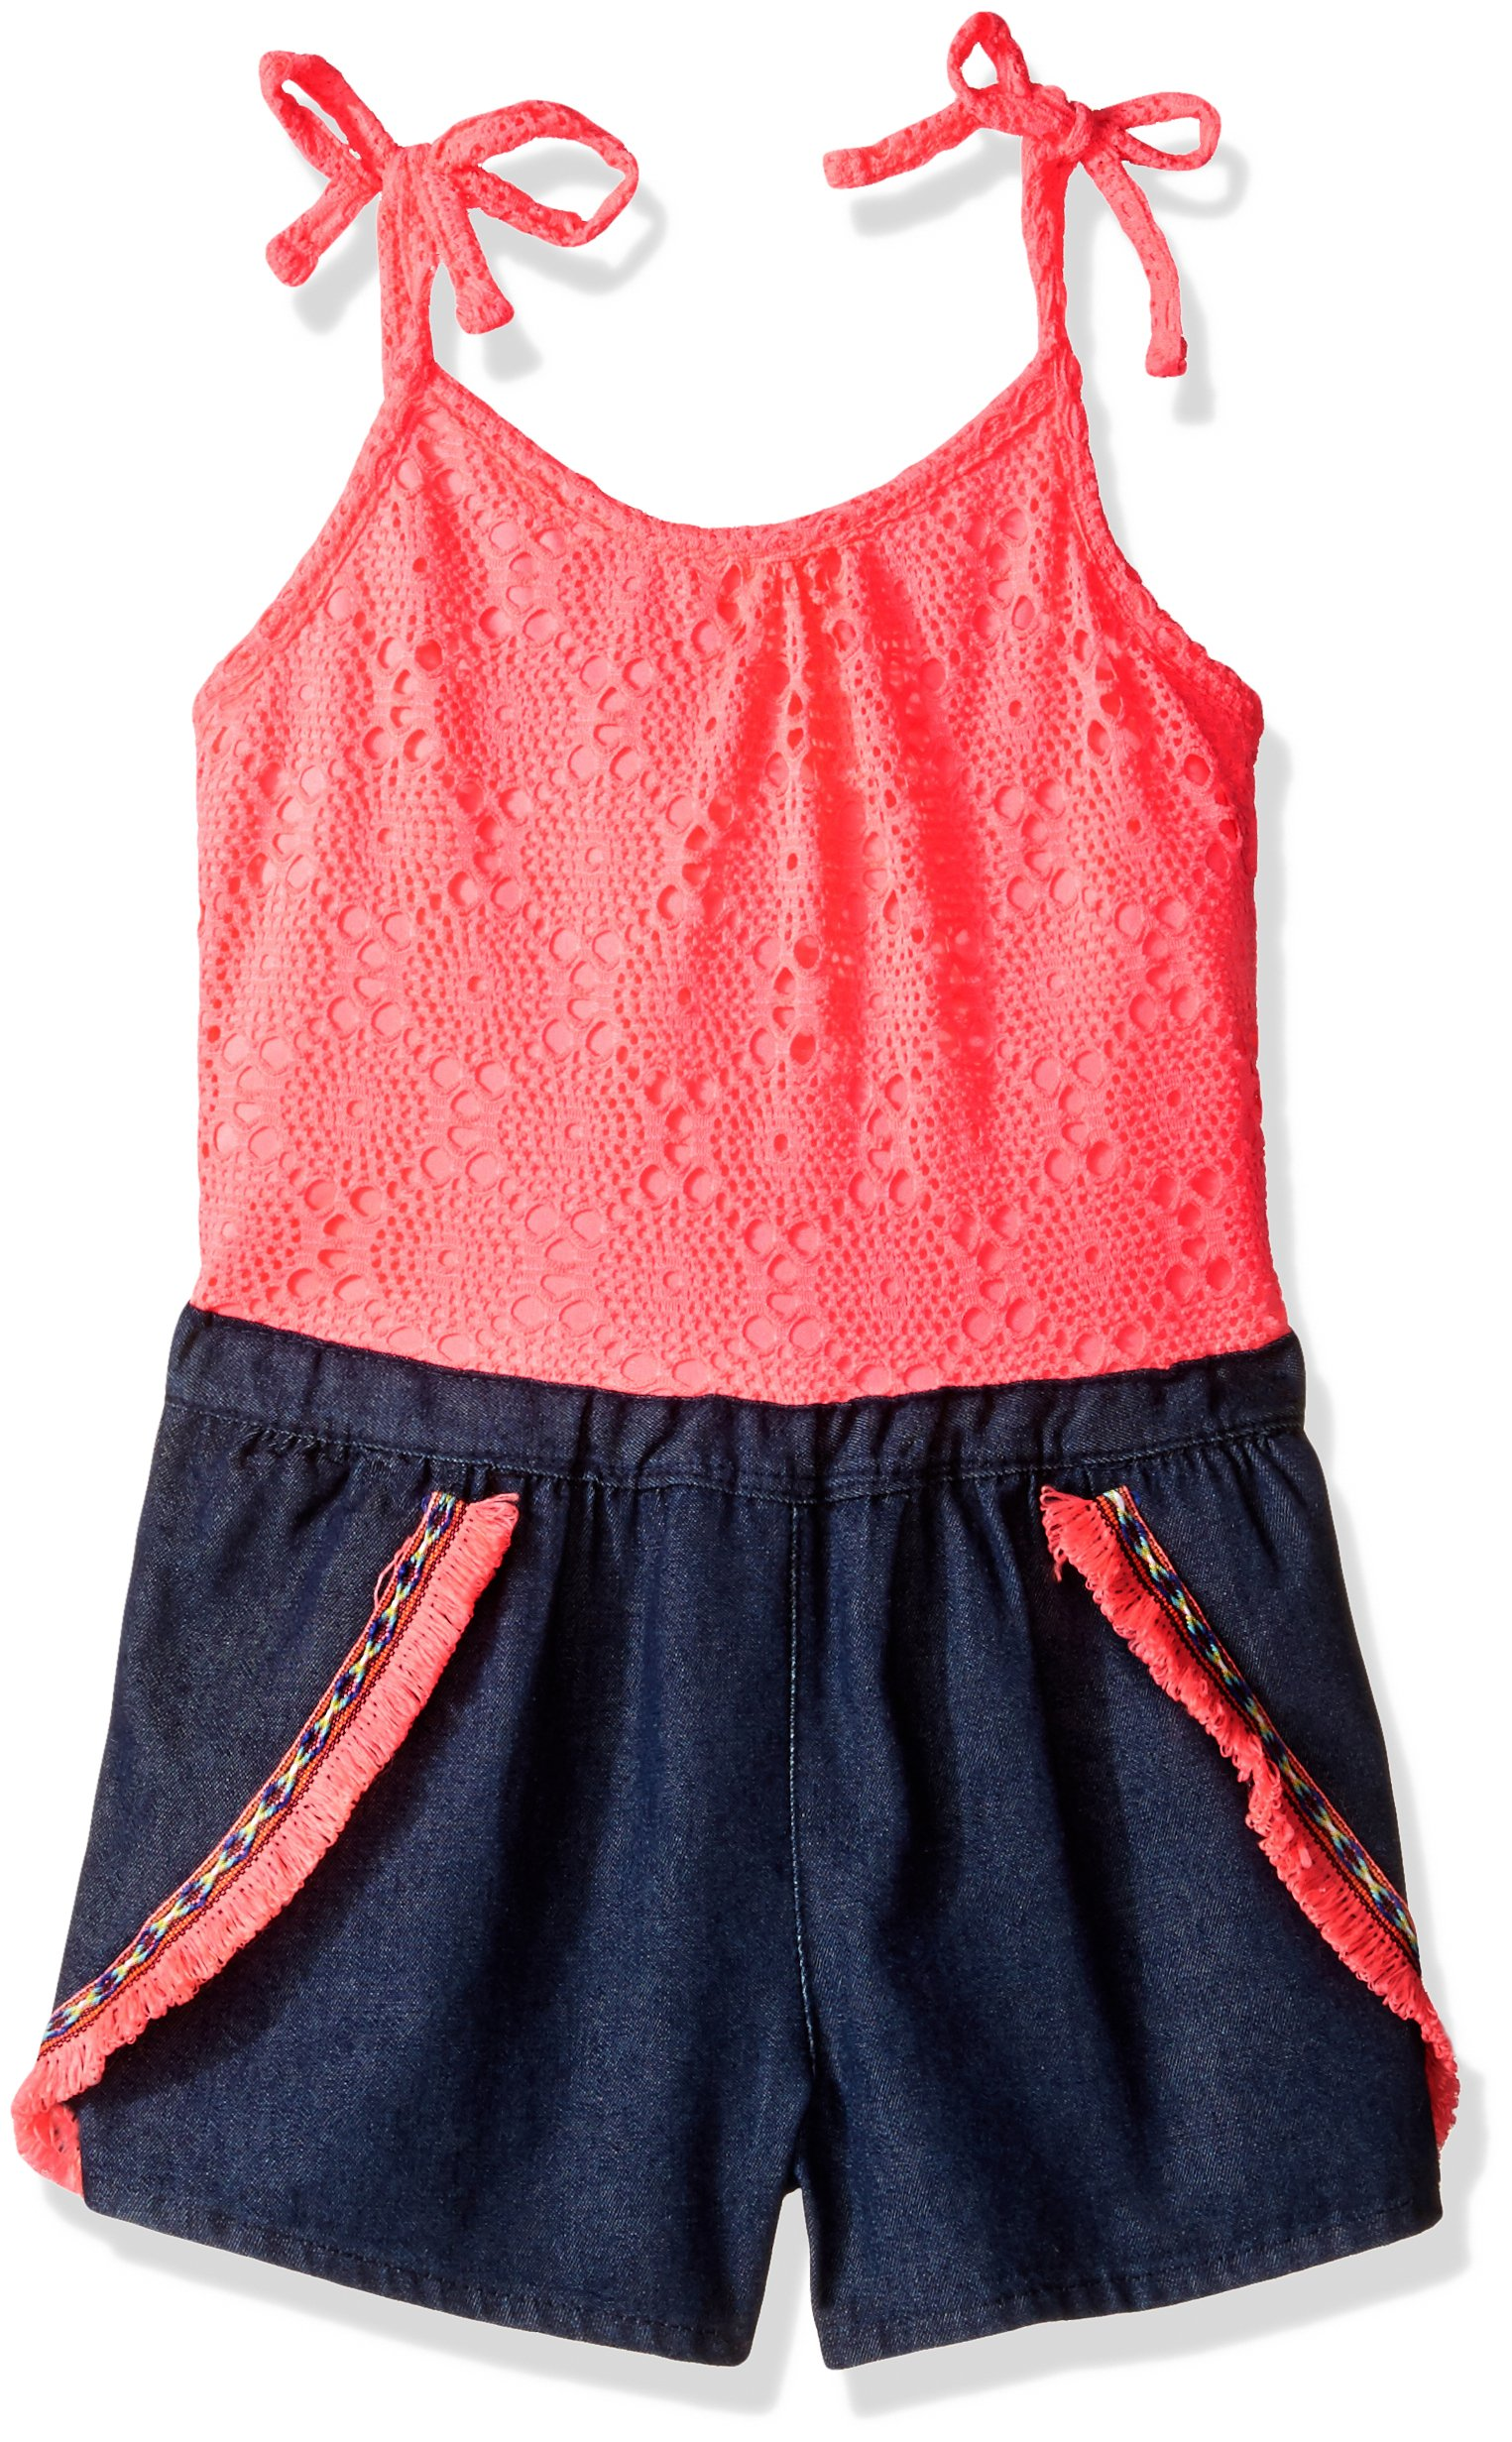 Limited Too Girls' Fashion Short Romper, 2728-Neon Coral, 14/16